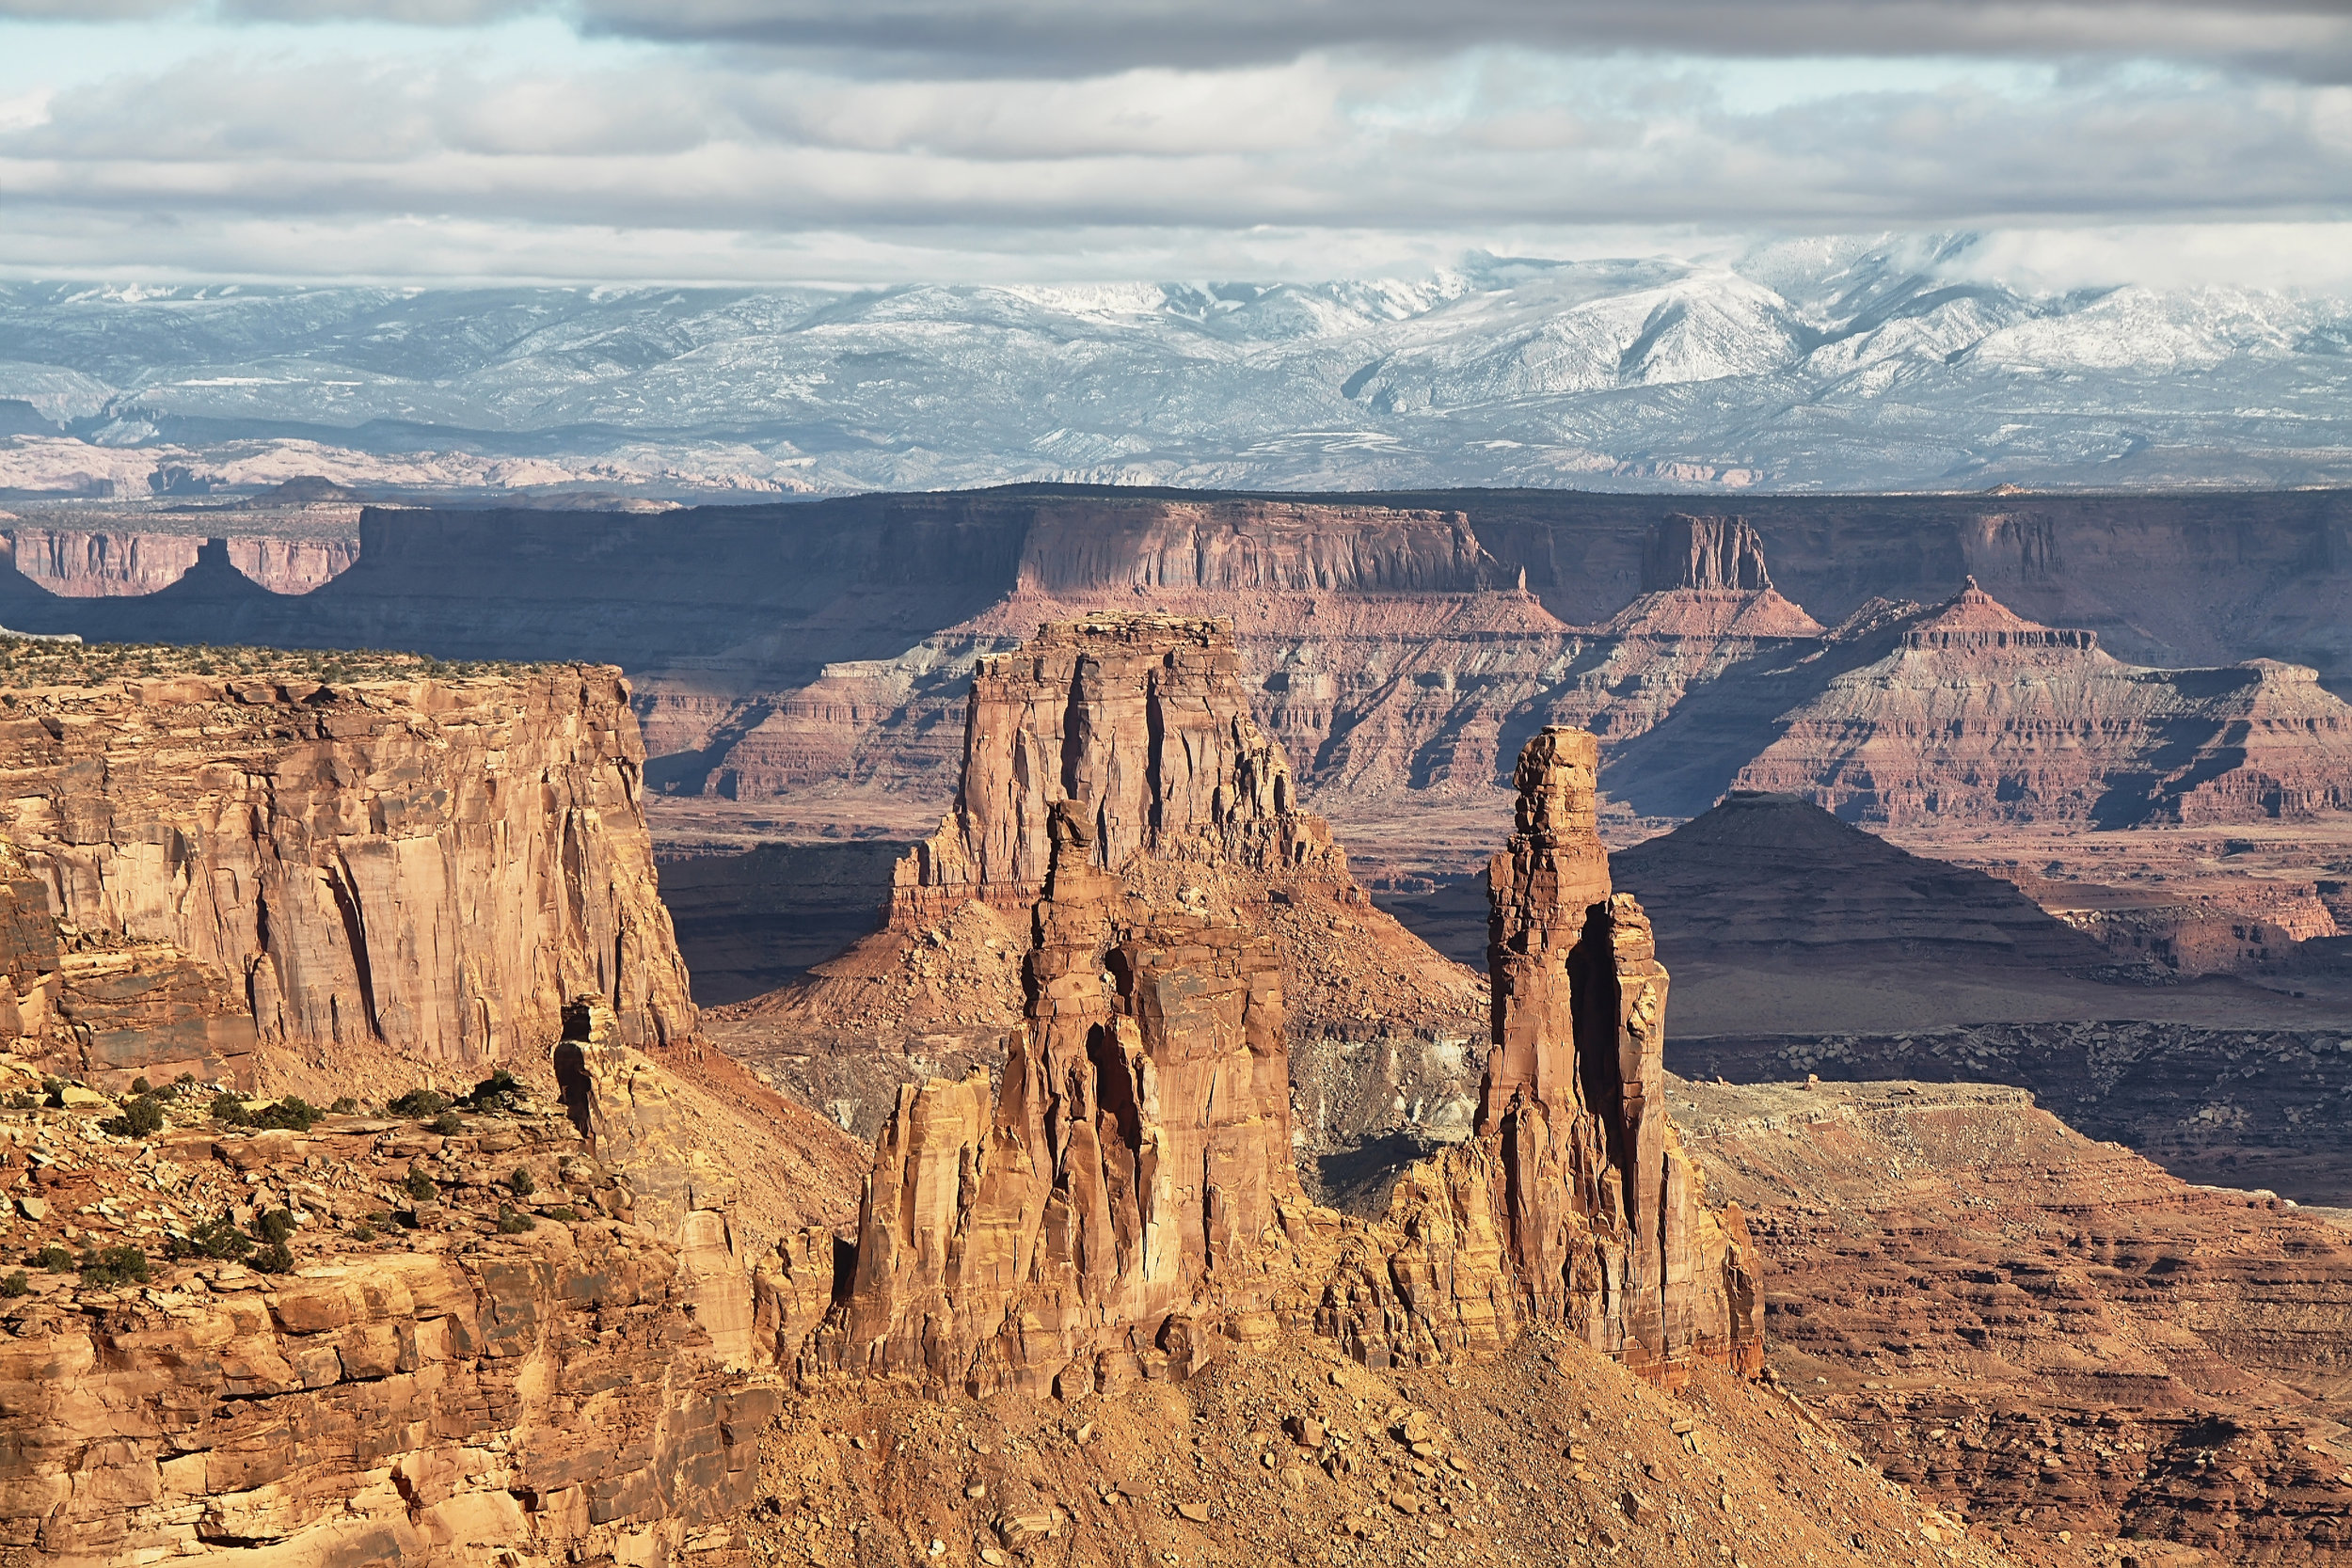 view-from-mesa-arch-in-canyonlands-national-park-PLLVCLV.jpg